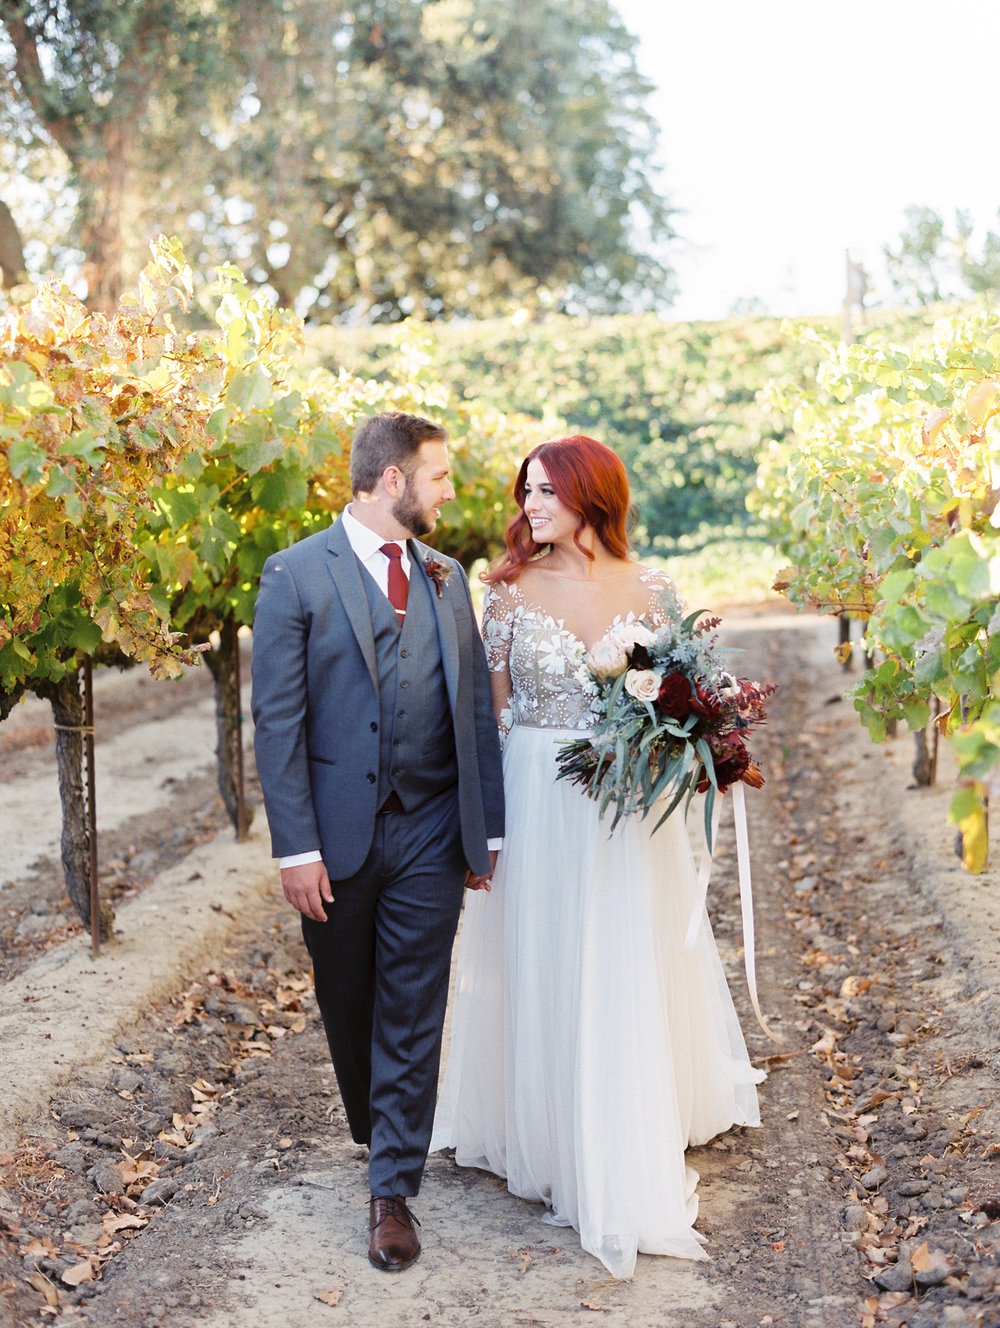 scribner-bend-vineyards-wedding-in-sacramento-california-6.jpg